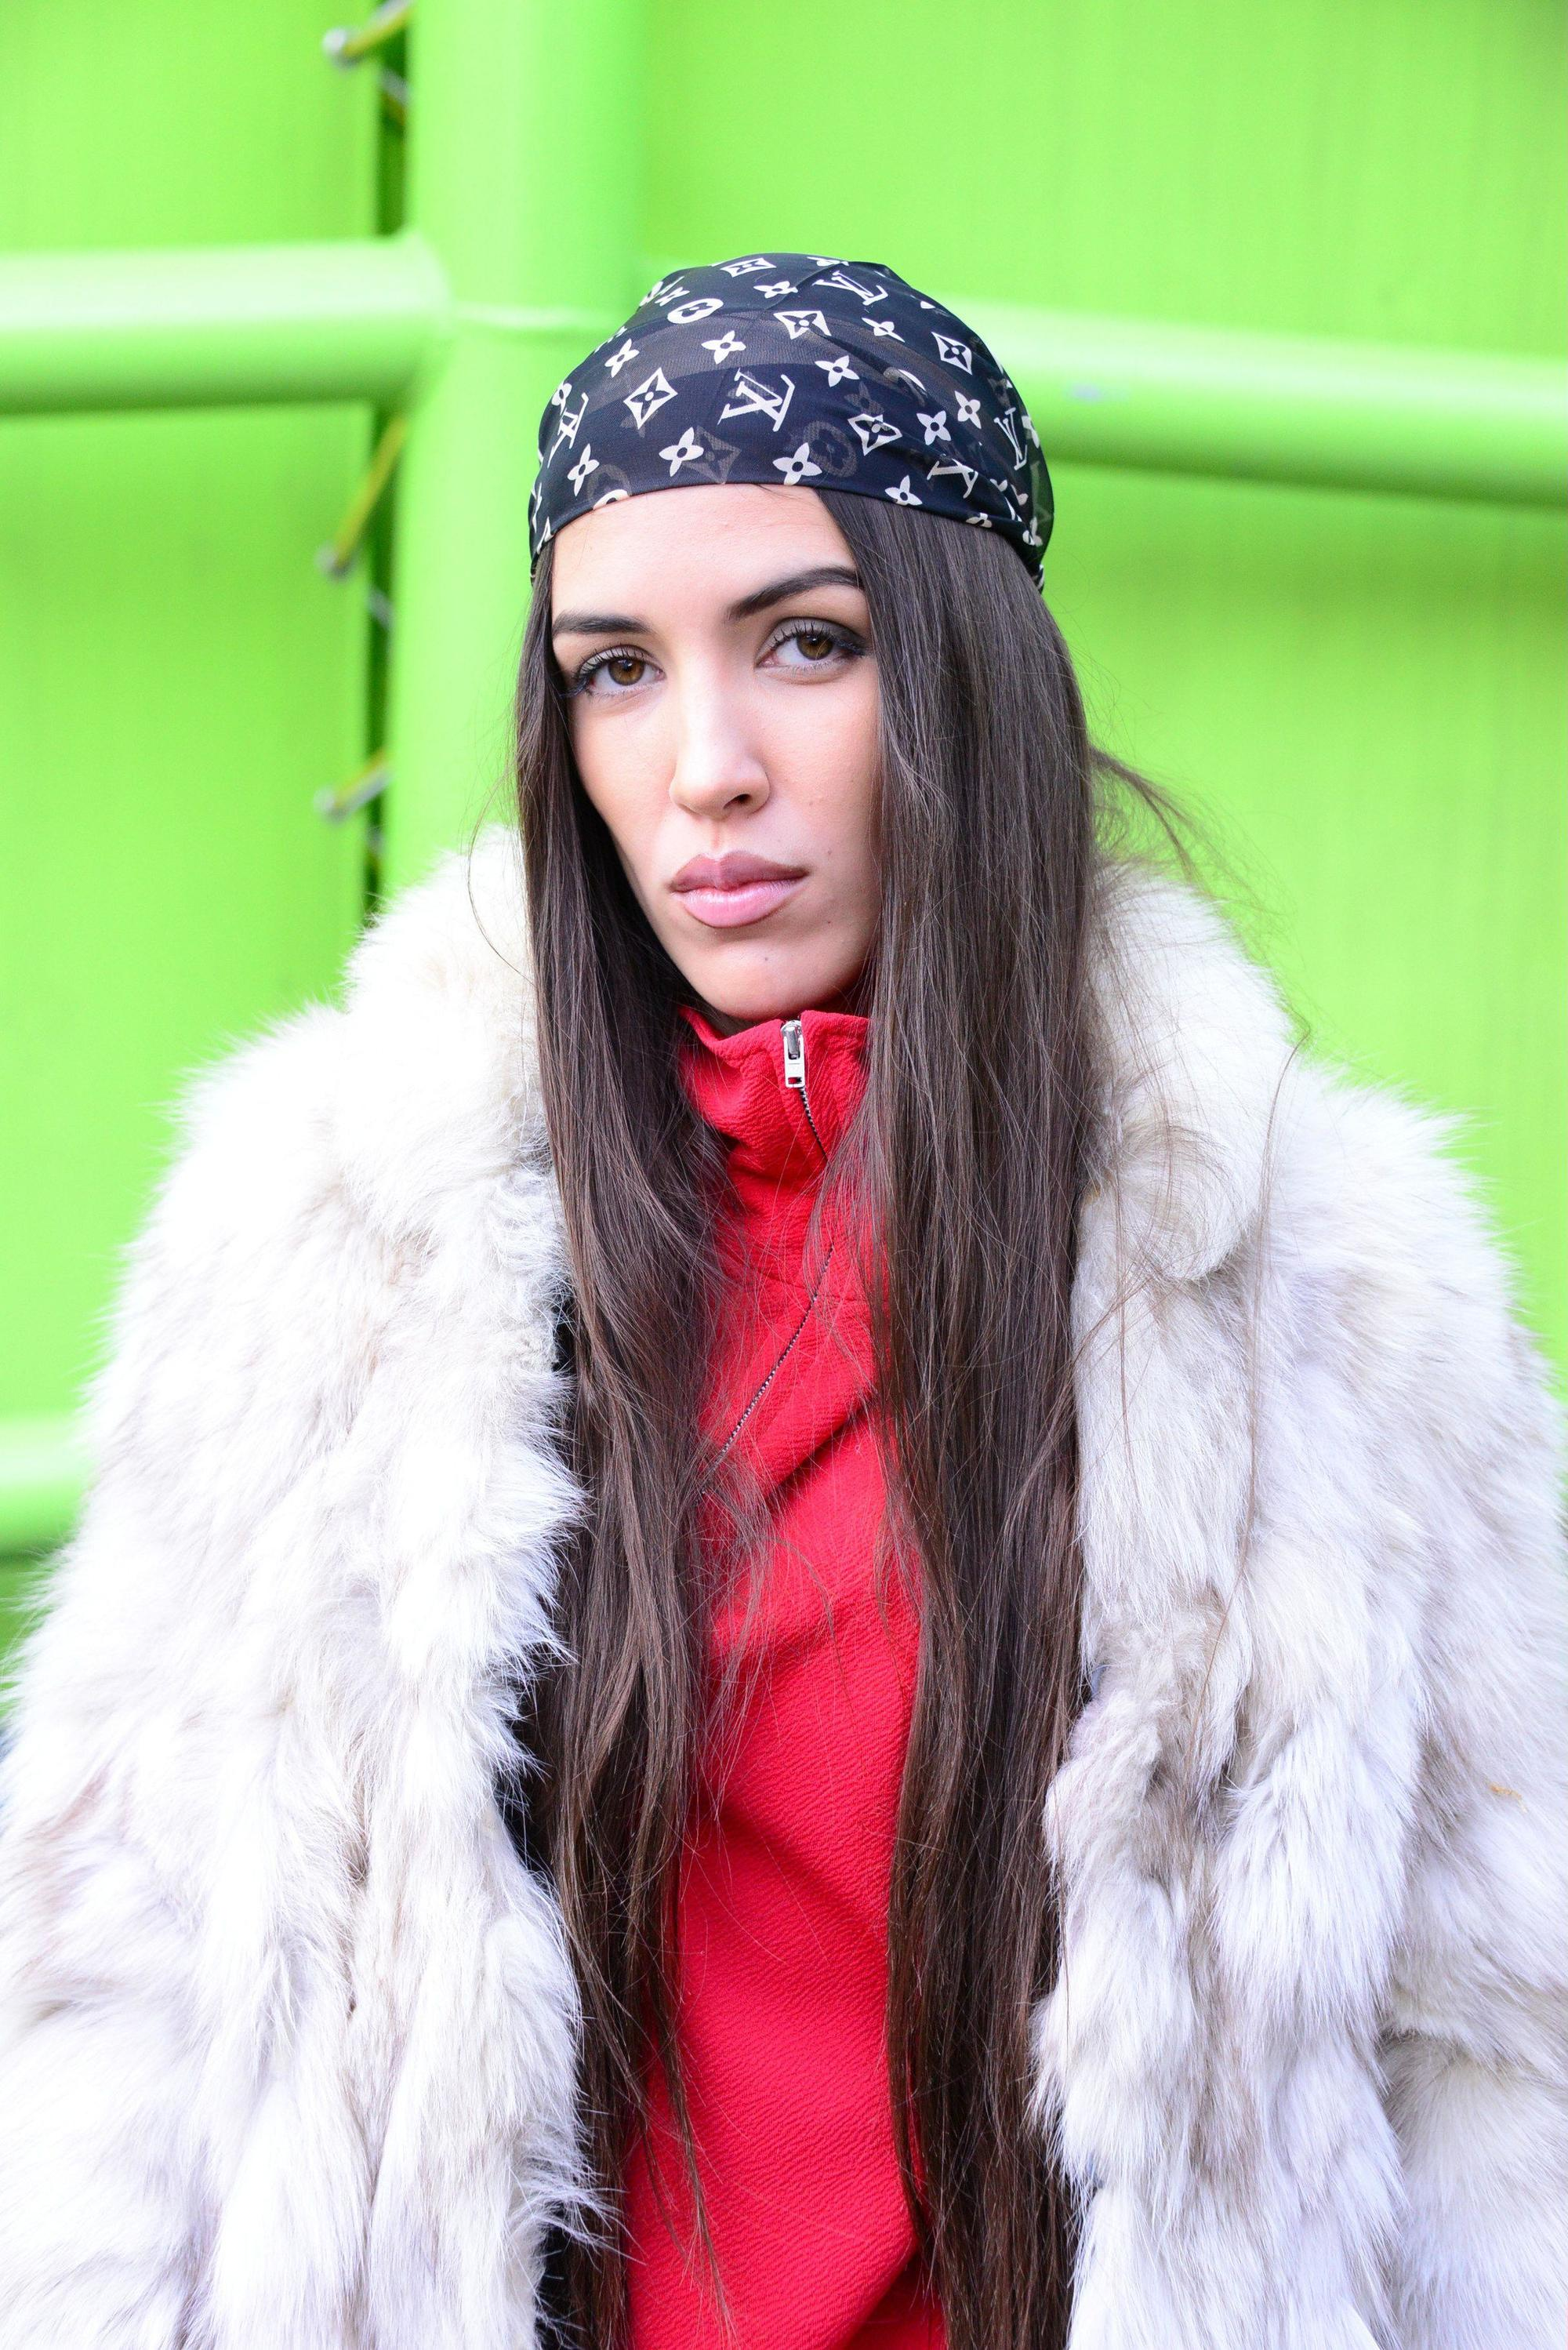 Headband and bandana hairstyles: Street style picture of a woman with long straight brown hair wearing a Louis Vuitton logo print bandana standing against a green backdrop.